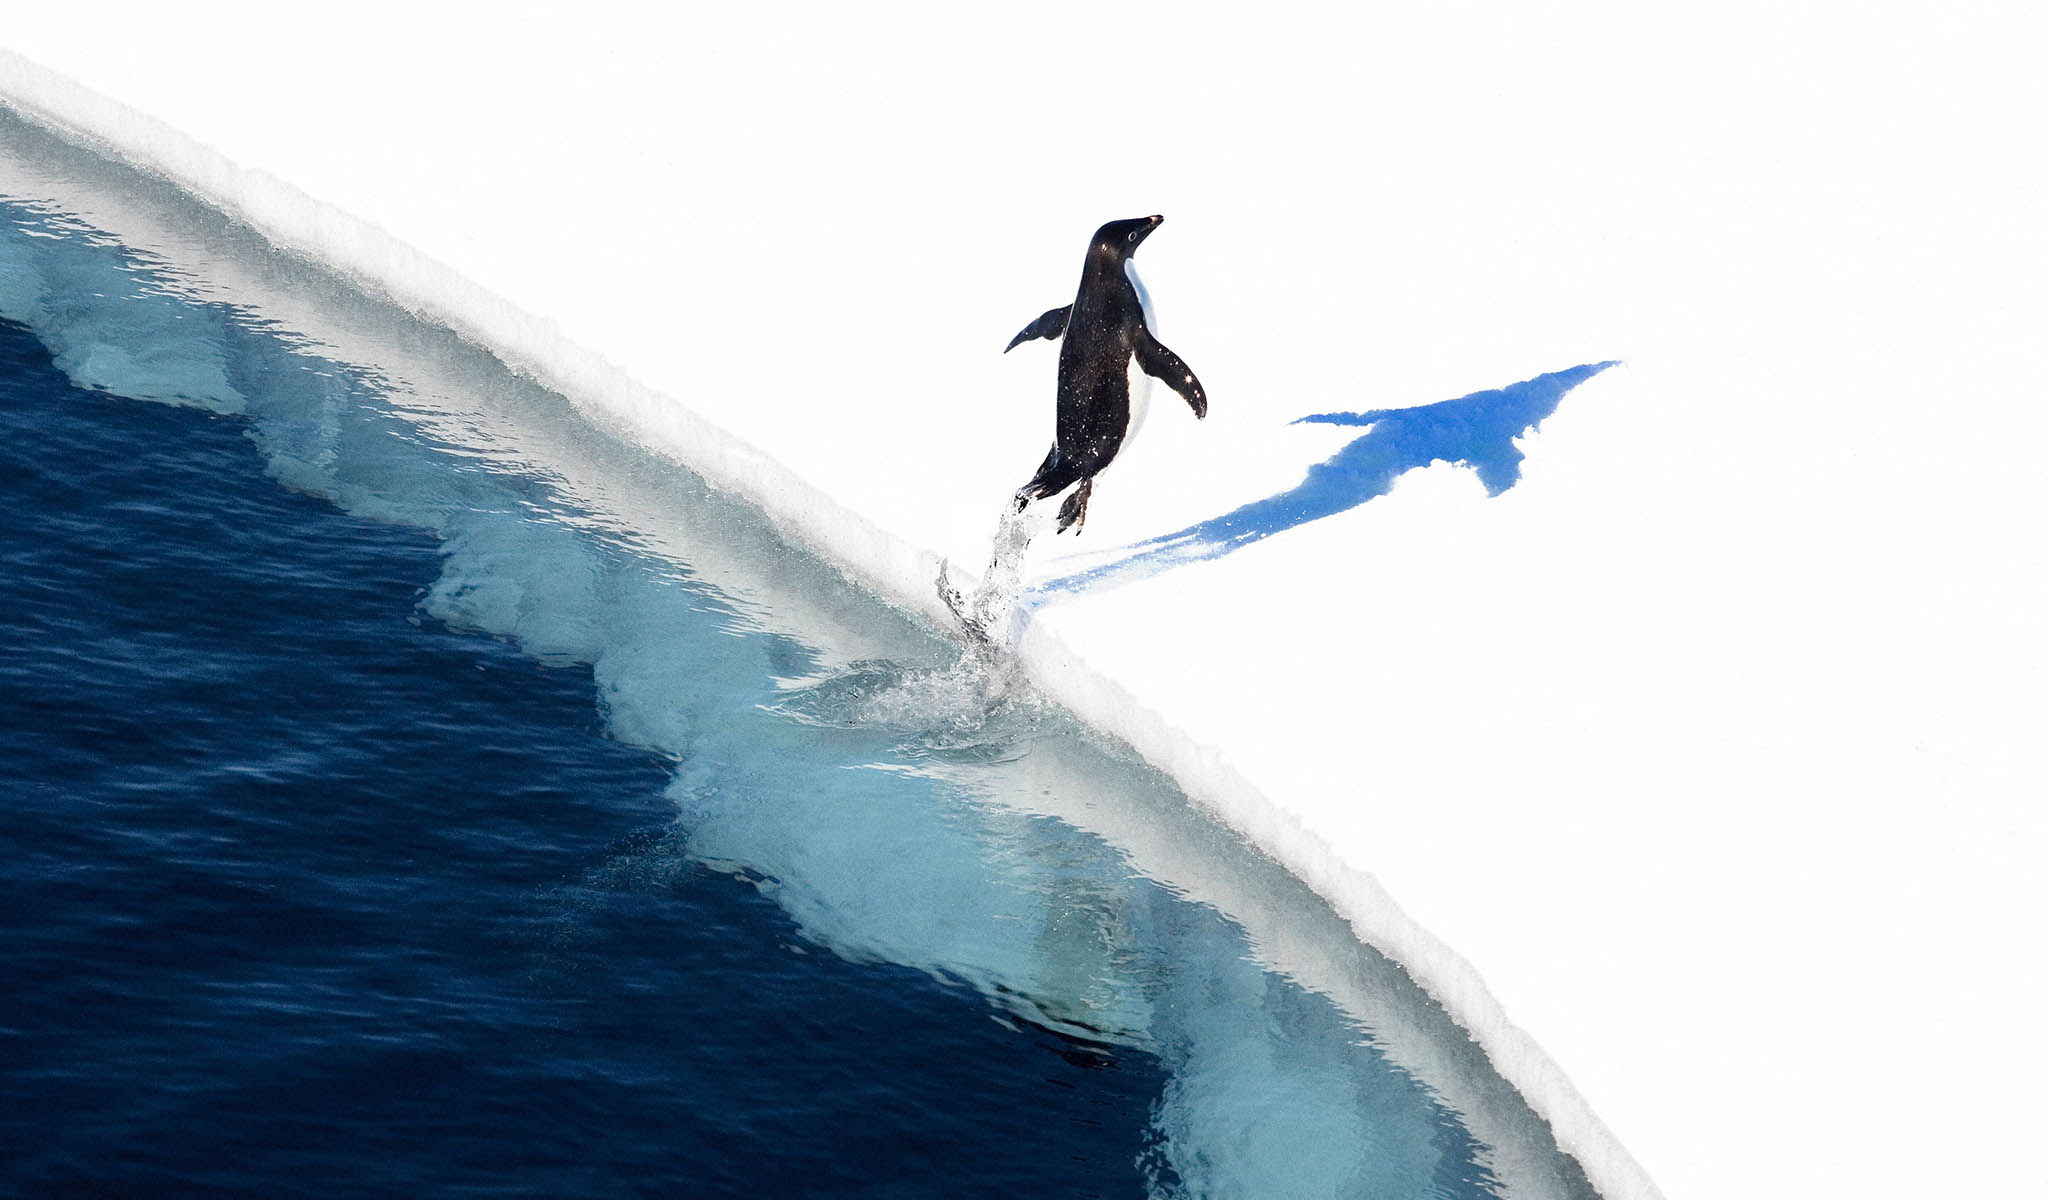 "TOPSHOT - This undated handout photo received from the Antarctic Ocean Alliance on October 28, 2016 shows a adelie penguin jumping onto the ice in the Ross Sea in Antarctica. The world's largest marine reserve aimed at protecting the pristine wilderness of Antarctica will be created after a ""momentous"" agreement was finally reached on October 28, 2016 with Russia dropping its long-held opposition. / AFP PHOTO / Antarctic Ocean Alliance / John Weller / RESTRICTED TO EDITORIAL USE - MANDATORY CREDIT  ""AFP PHOTO  / ANTARCTIC OCEAN ALLIANCE / JOHN WELLER"" - NO MARKETING NO ADVERTISING CAMPAIGNS - DISTRIBUTED AS A SERVICE TO CLIENTS - NO ARCHIVES - NO SALES - ONE TIME USE - TO BE USED EXCLUSIVELY WITH AFP STORY ANTARCTICA-AUSTRALIA-ENVIRONMENT-CONSERVATION / JOHN WELLER/AFP/Getty Images"